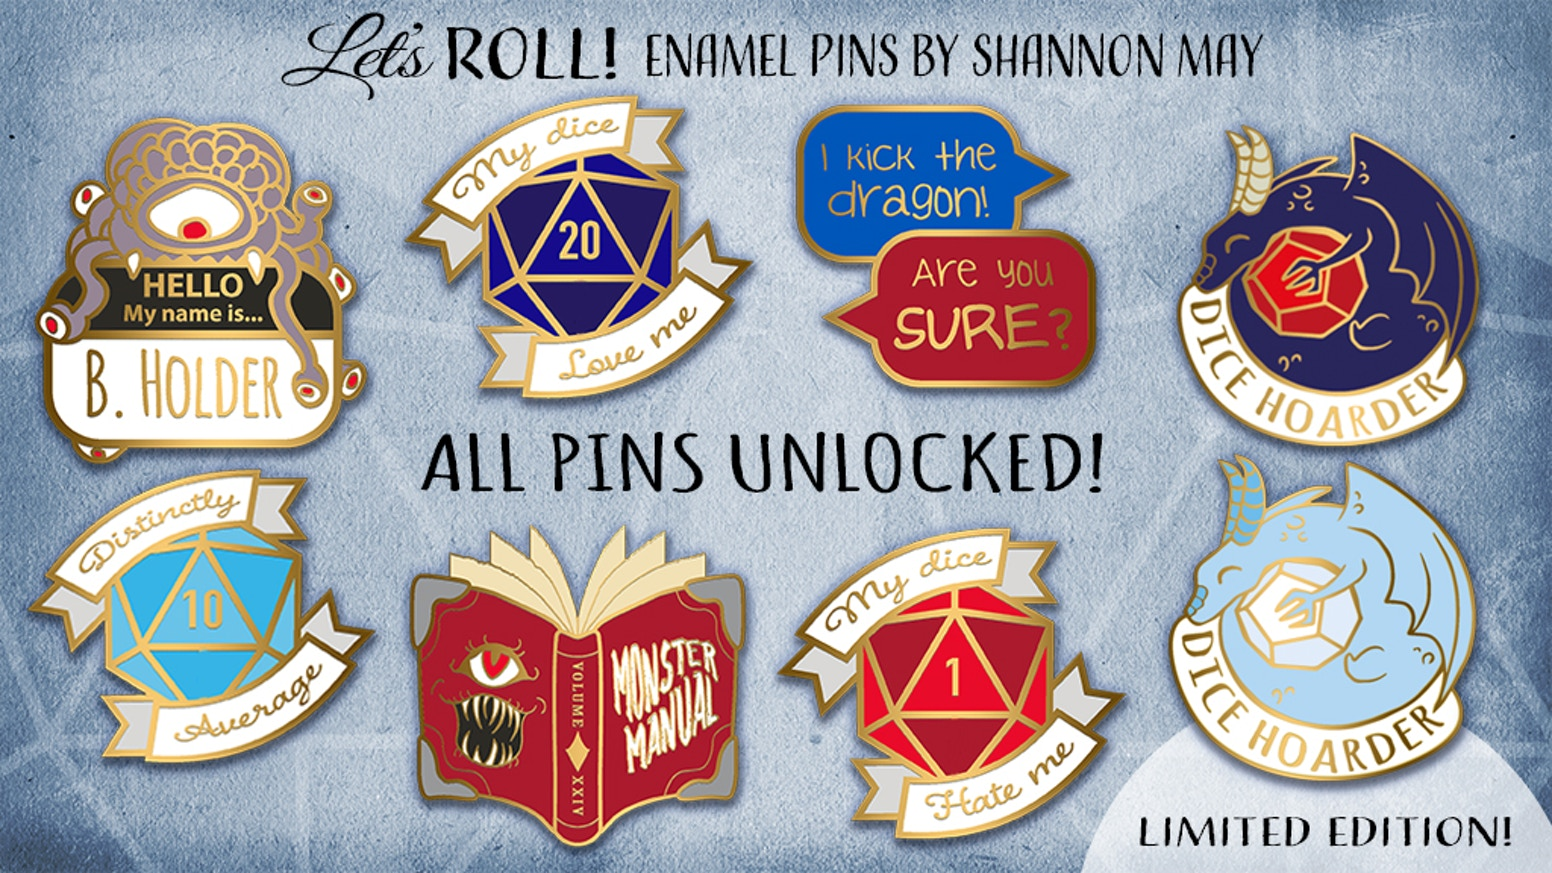 Fantasy tabletop rpg / DnD inspired hard enamel pins to complement your TTRPG dungeon exploration - Dragons, monsters and dice abound!